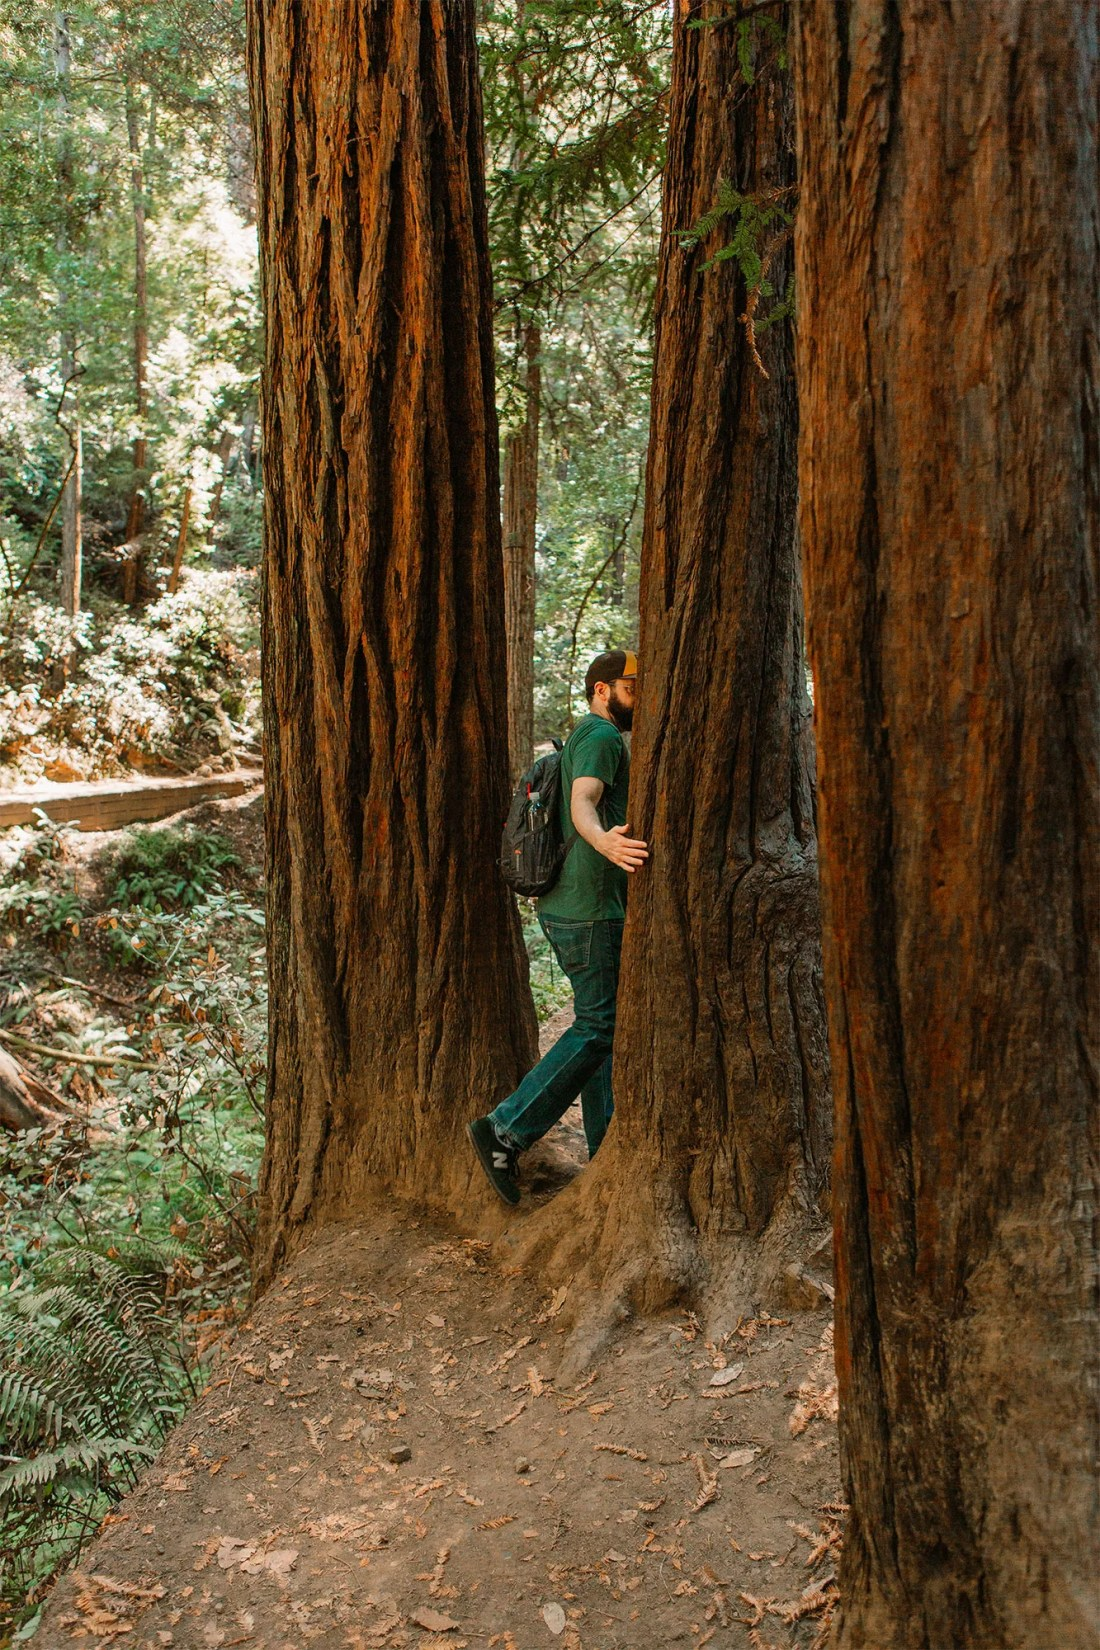 A man walks through tall Redwood Trees in Muir Woods National Monument